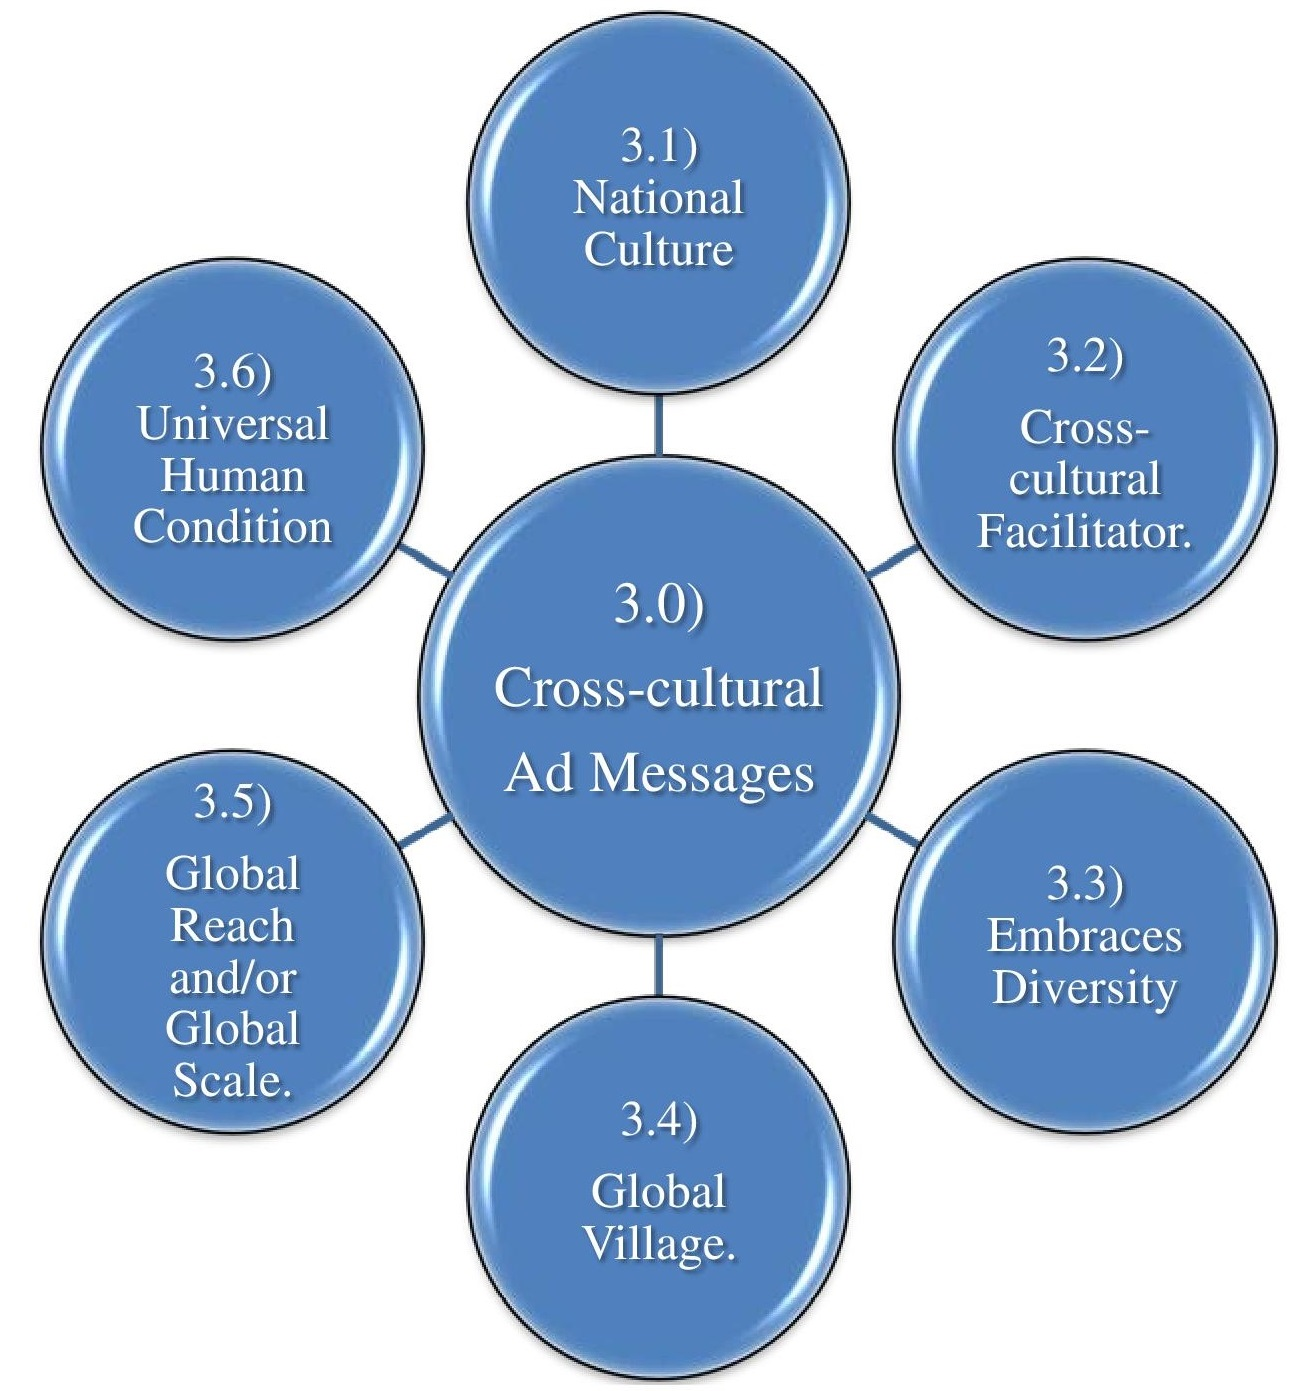 Research papers on cross-cultural